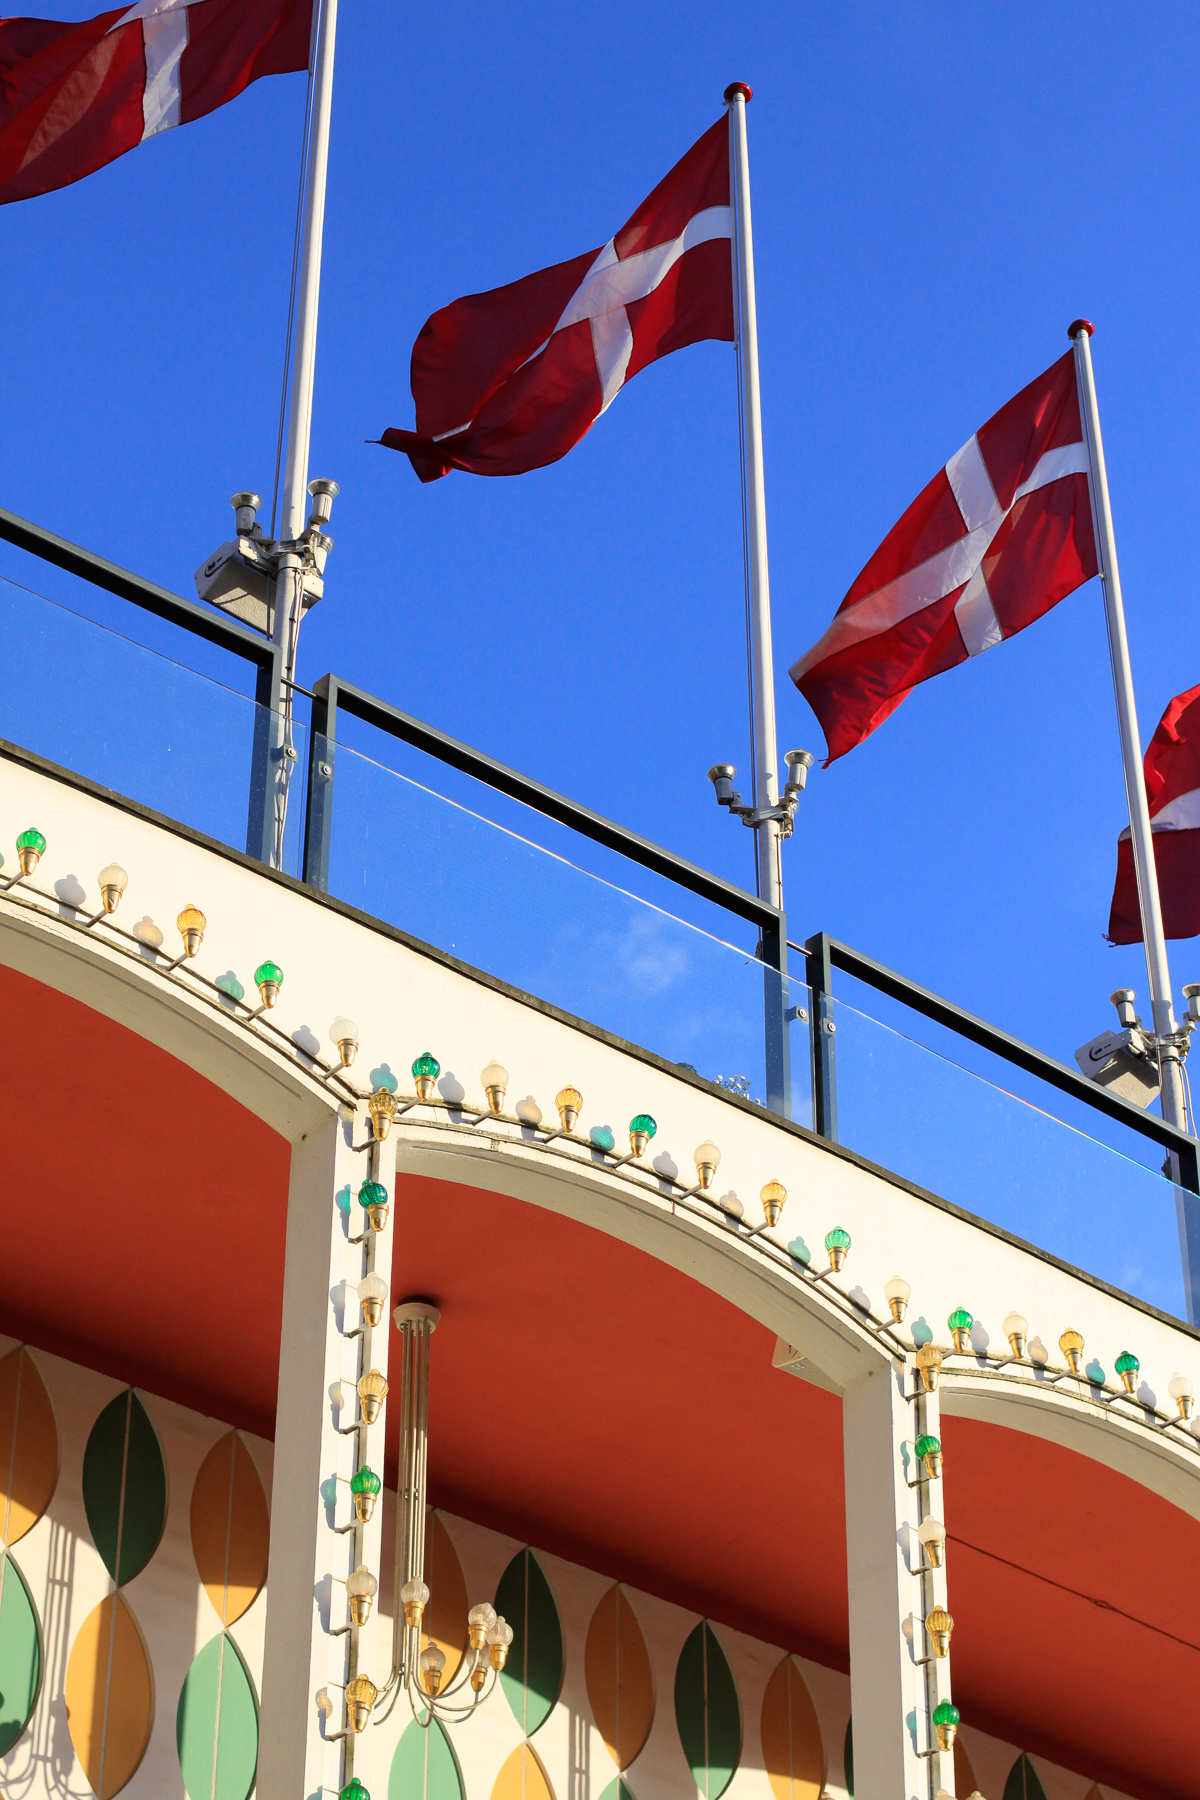 Danish Flags at Copenhagen's Tivoli Gardens for Constitution Day in Denmark.